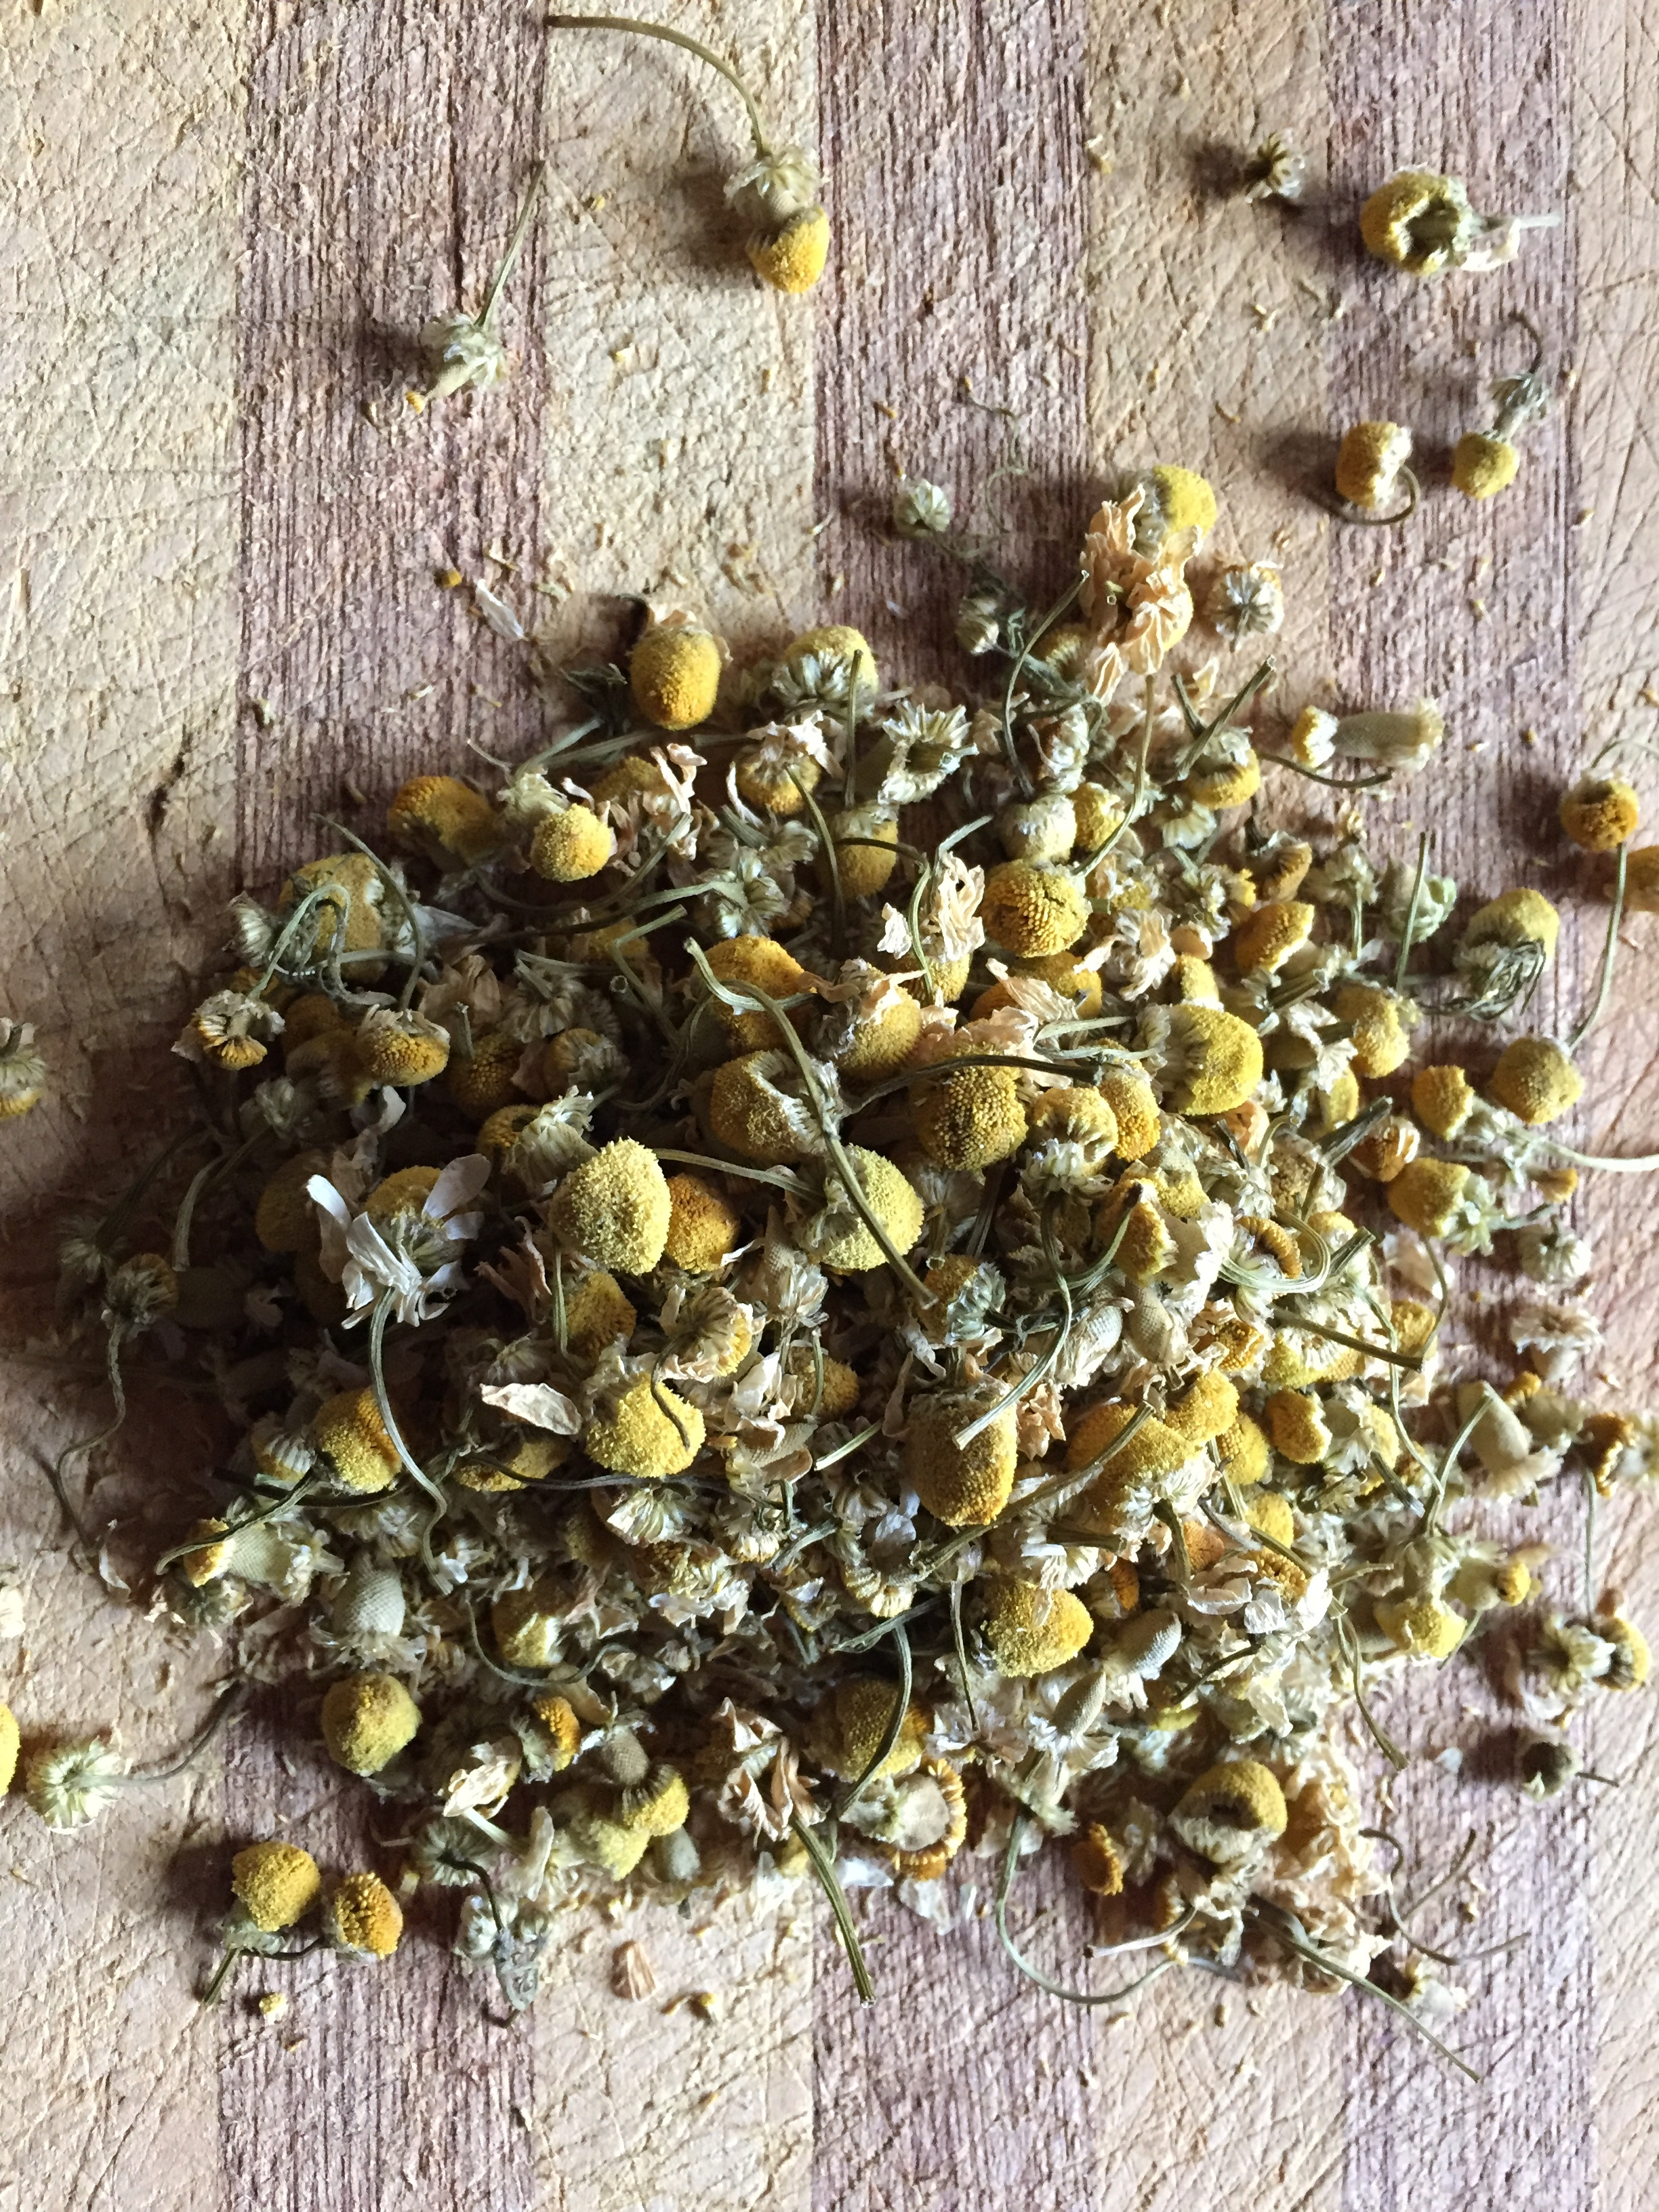 Chamomile - A super food, chamomile is full of phytochemicals, the biologically active compounds found in plants, beneficial to human health. It also contains 28 different terpenoids and 36 flavonoids - the scent and taste where medicine is found.Chamomile nearly mimics CBD, with the added bonus of being calming and uplifting for anxiety and depression.Any remedy made with cannabis can be made with chamomile.See the Chamomile page for more beneficial information.